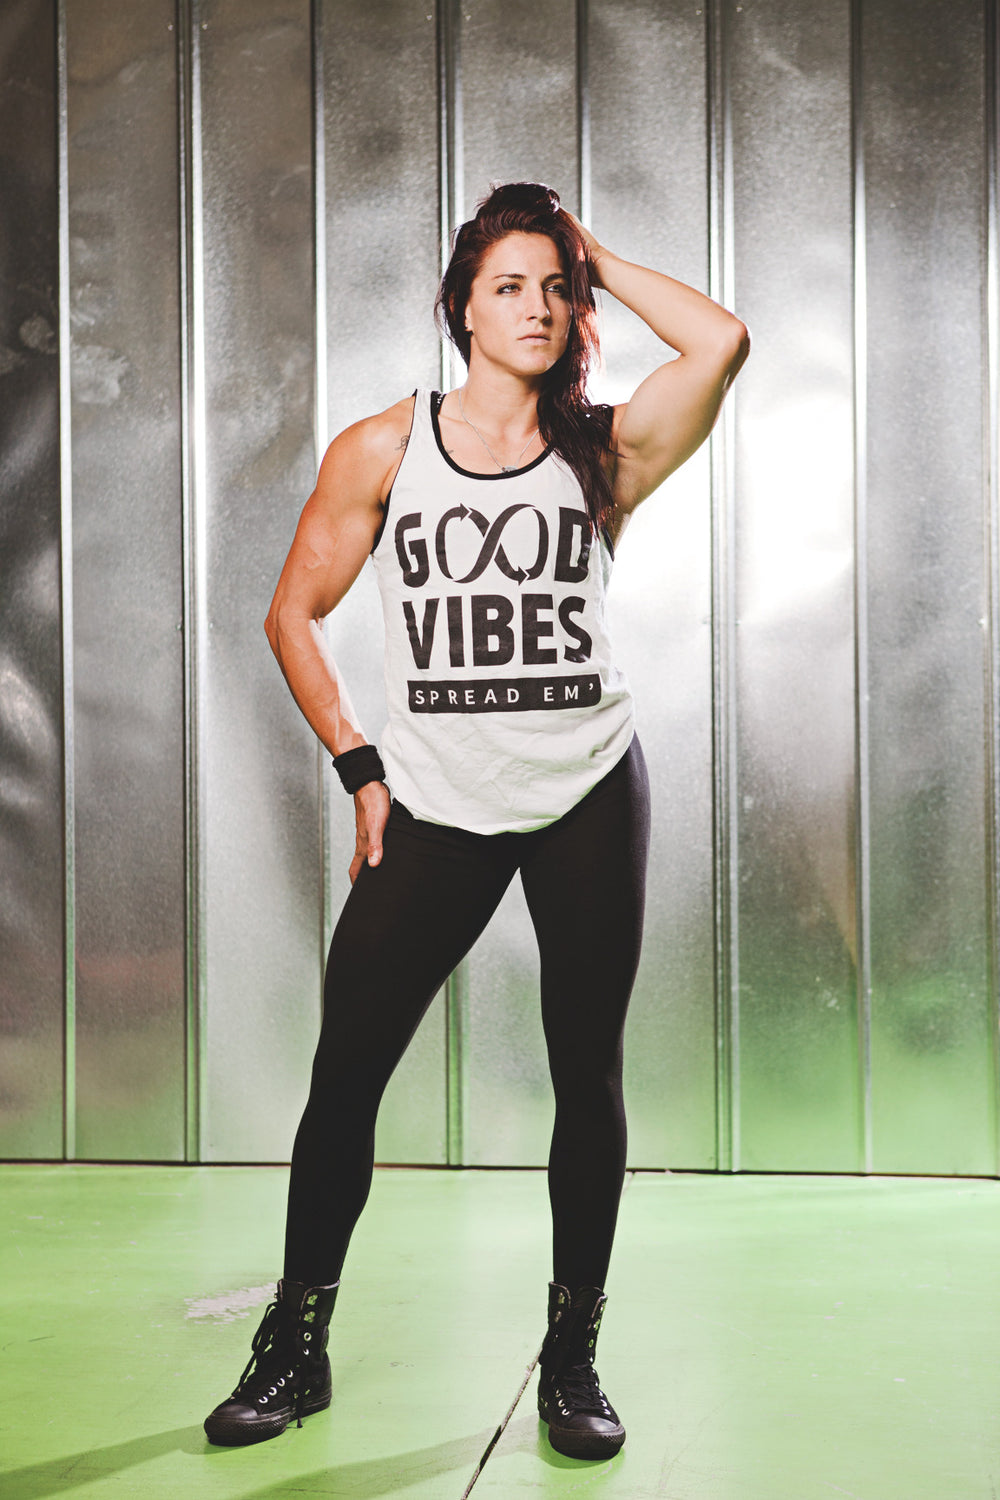 """GOOD VIBES - SPREAD EM"" White/Black Tank"